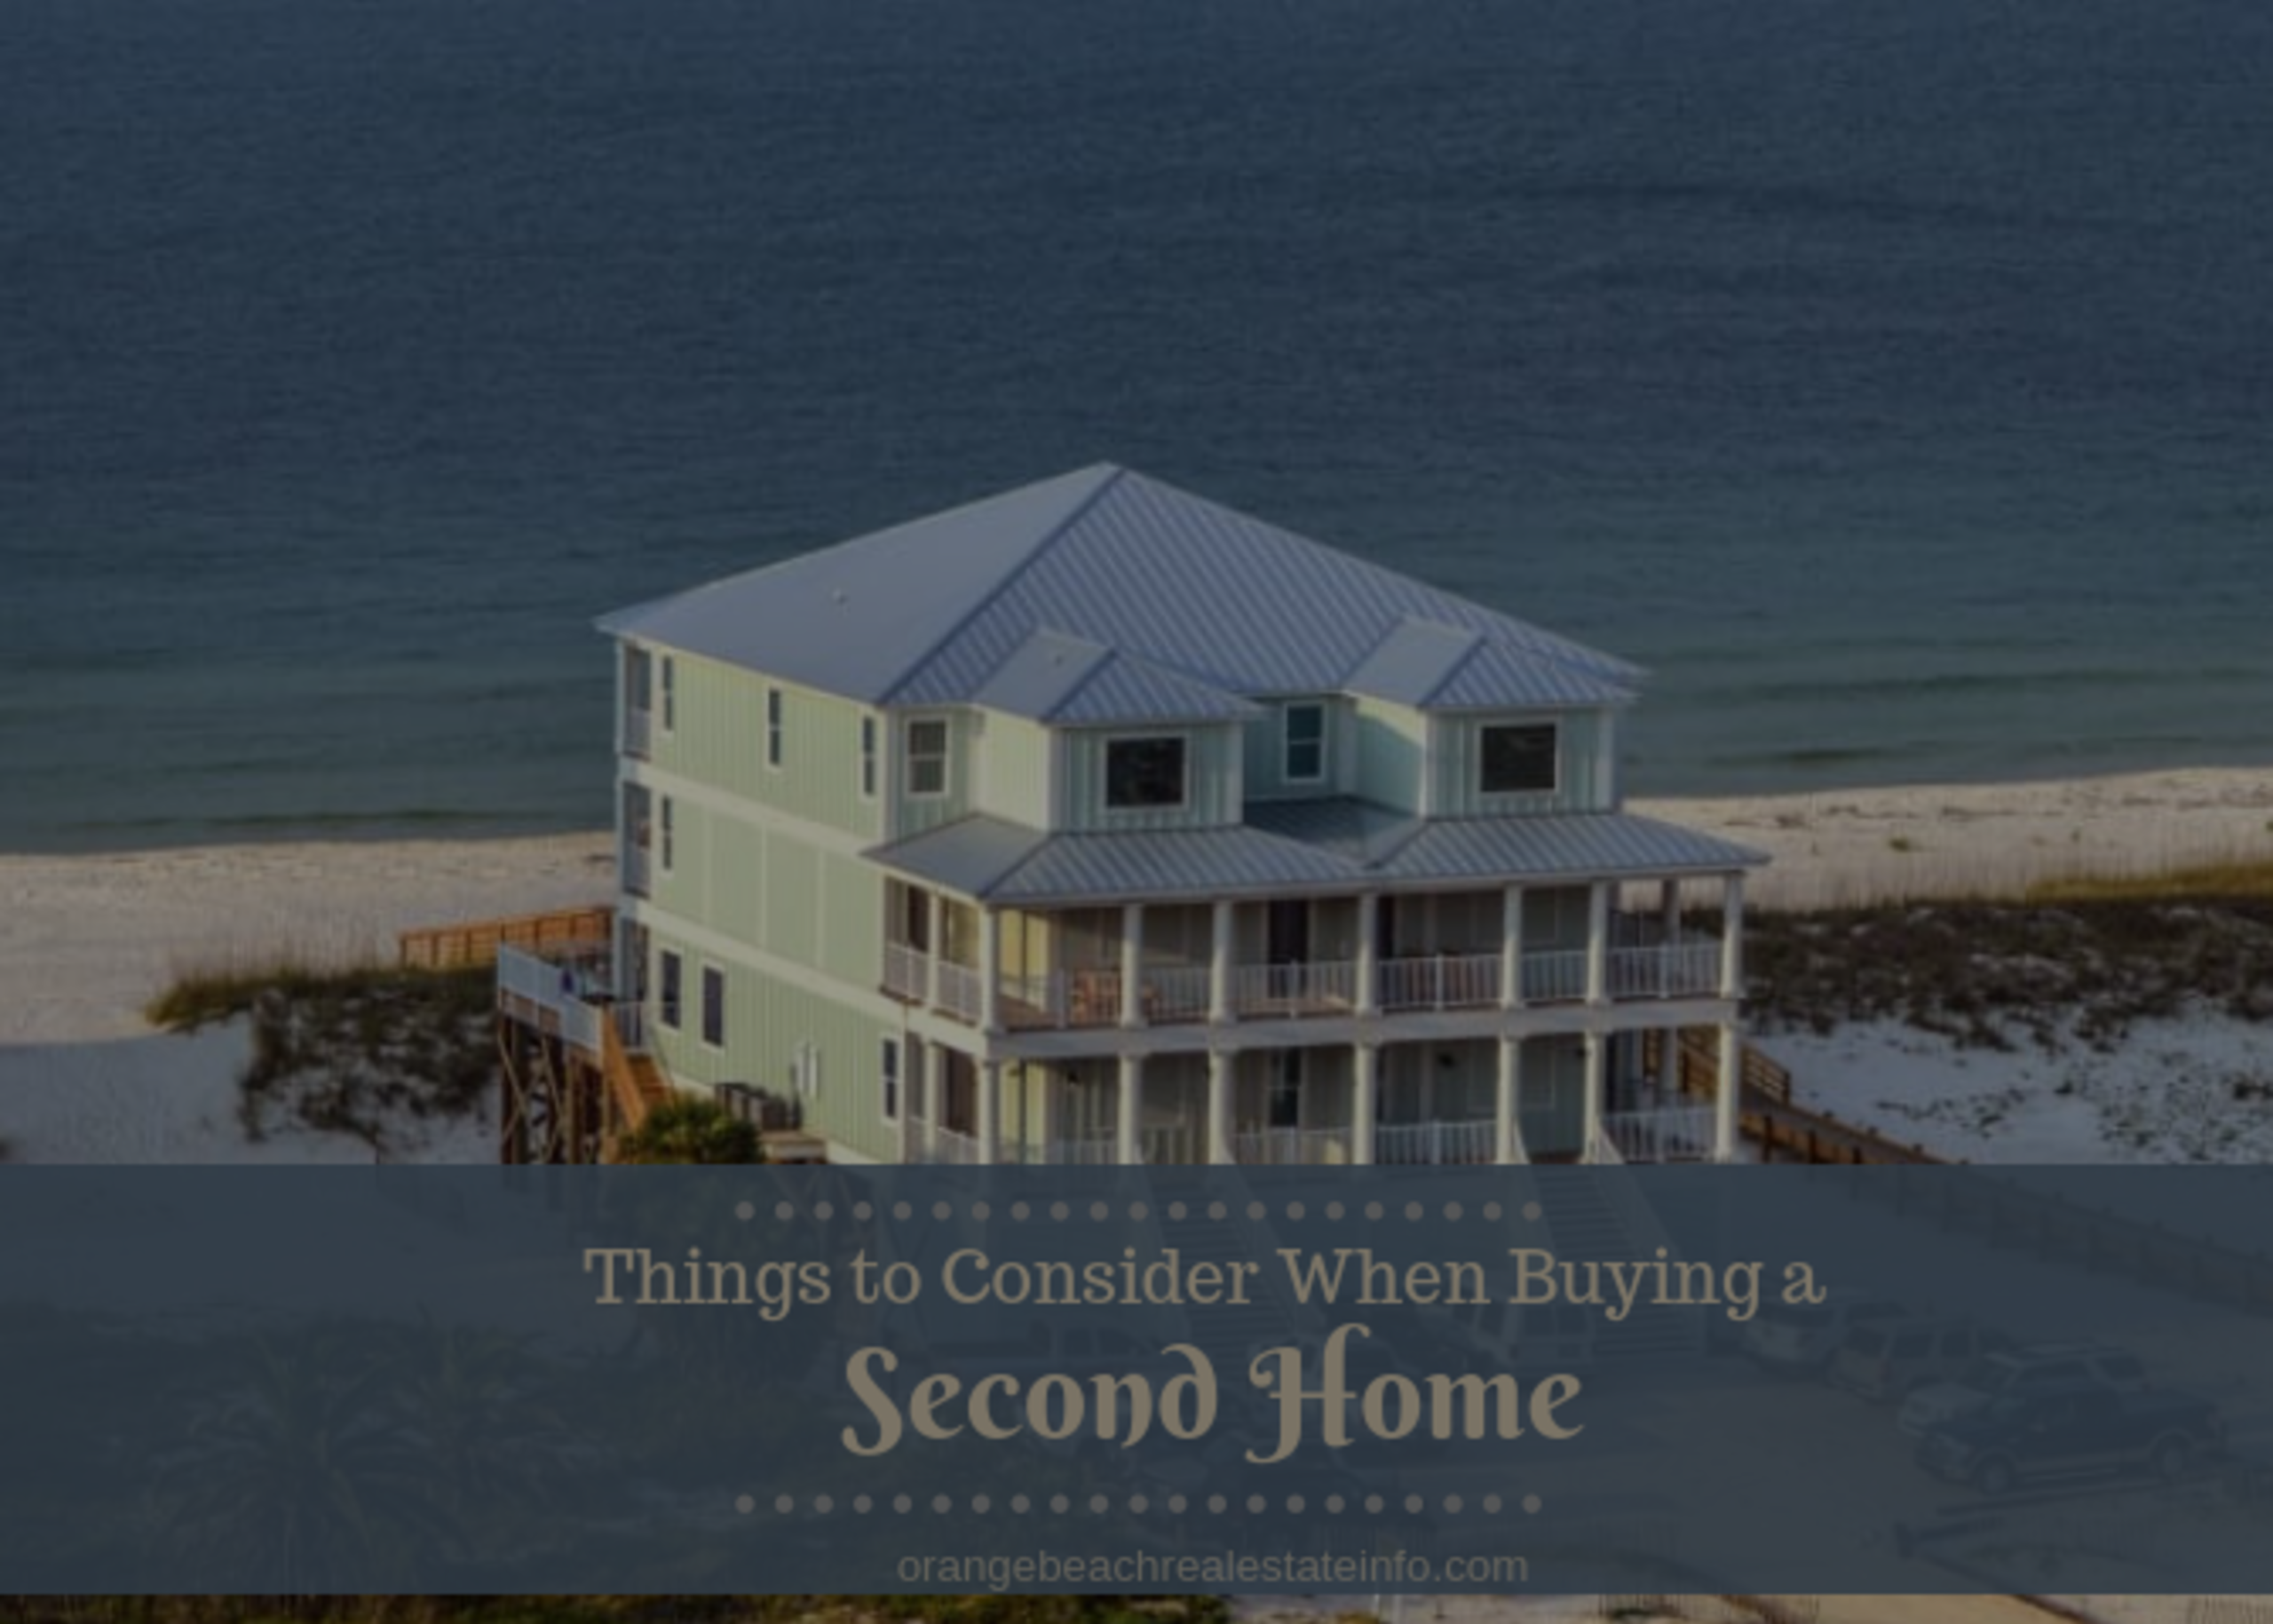 Things to Consider When Buying a Second Home